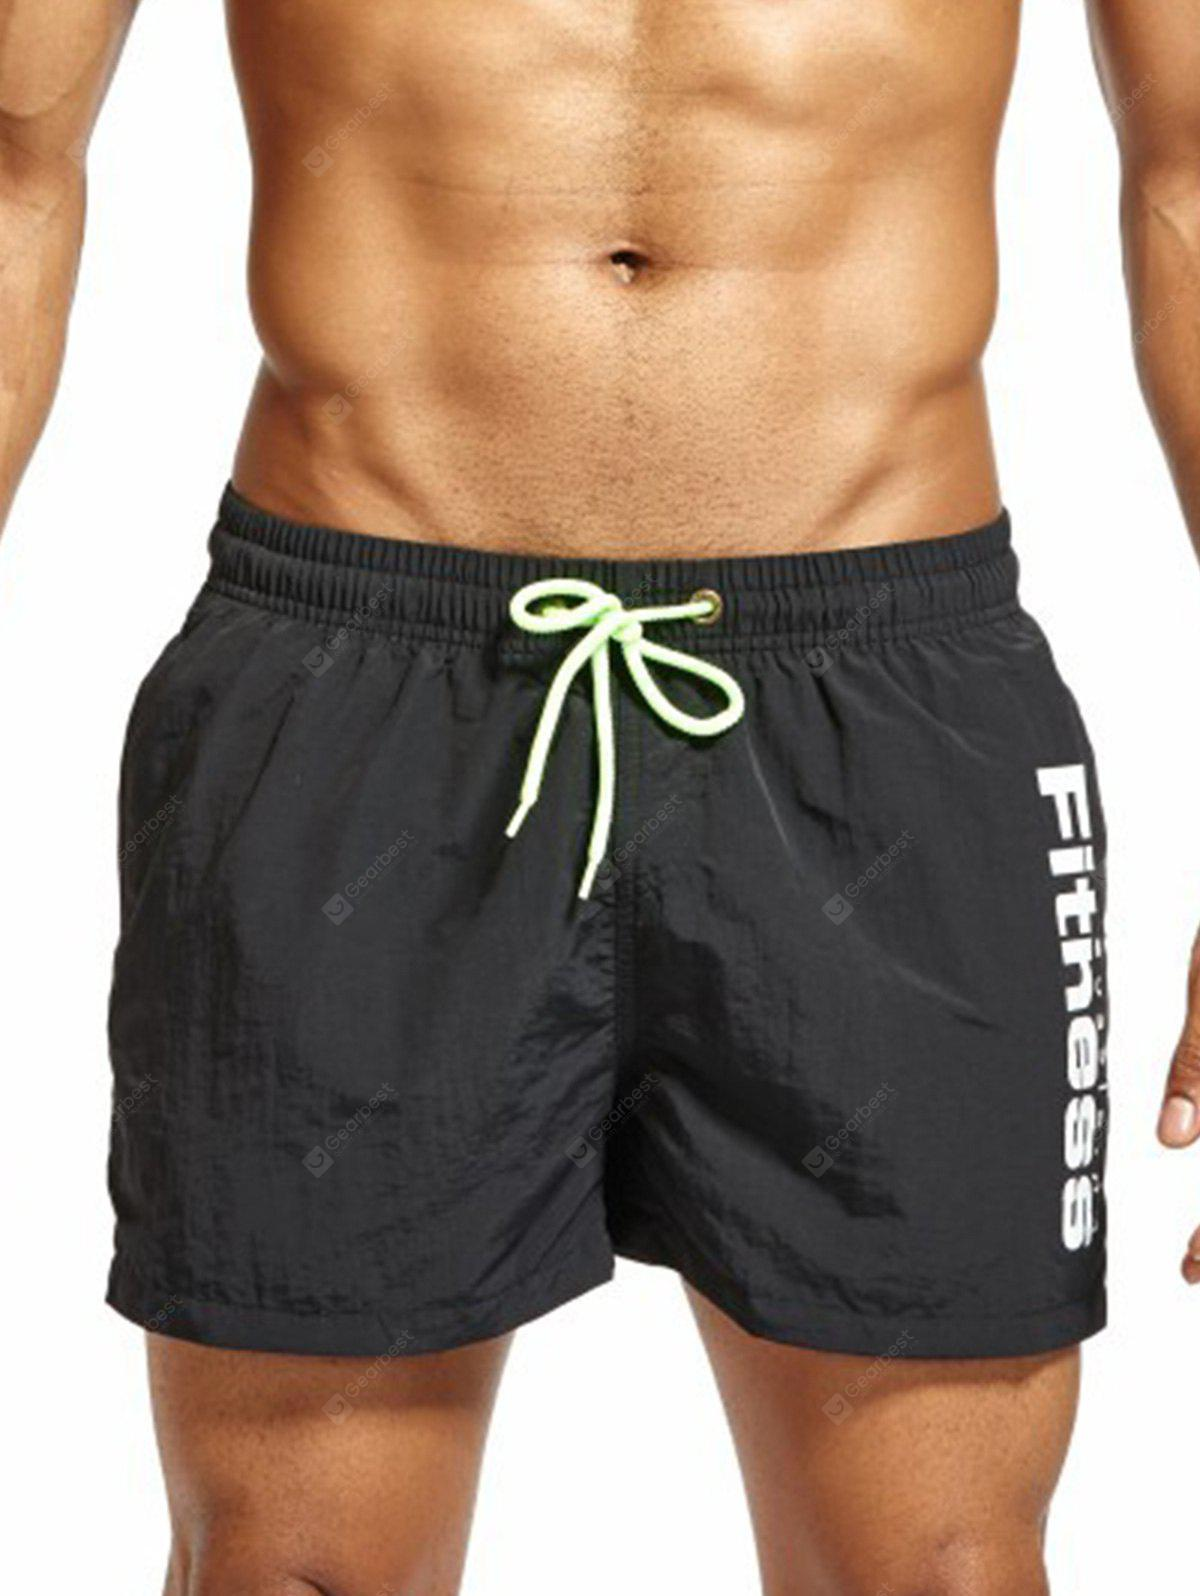 Lace Up Mesh Lining Fitness Shorts